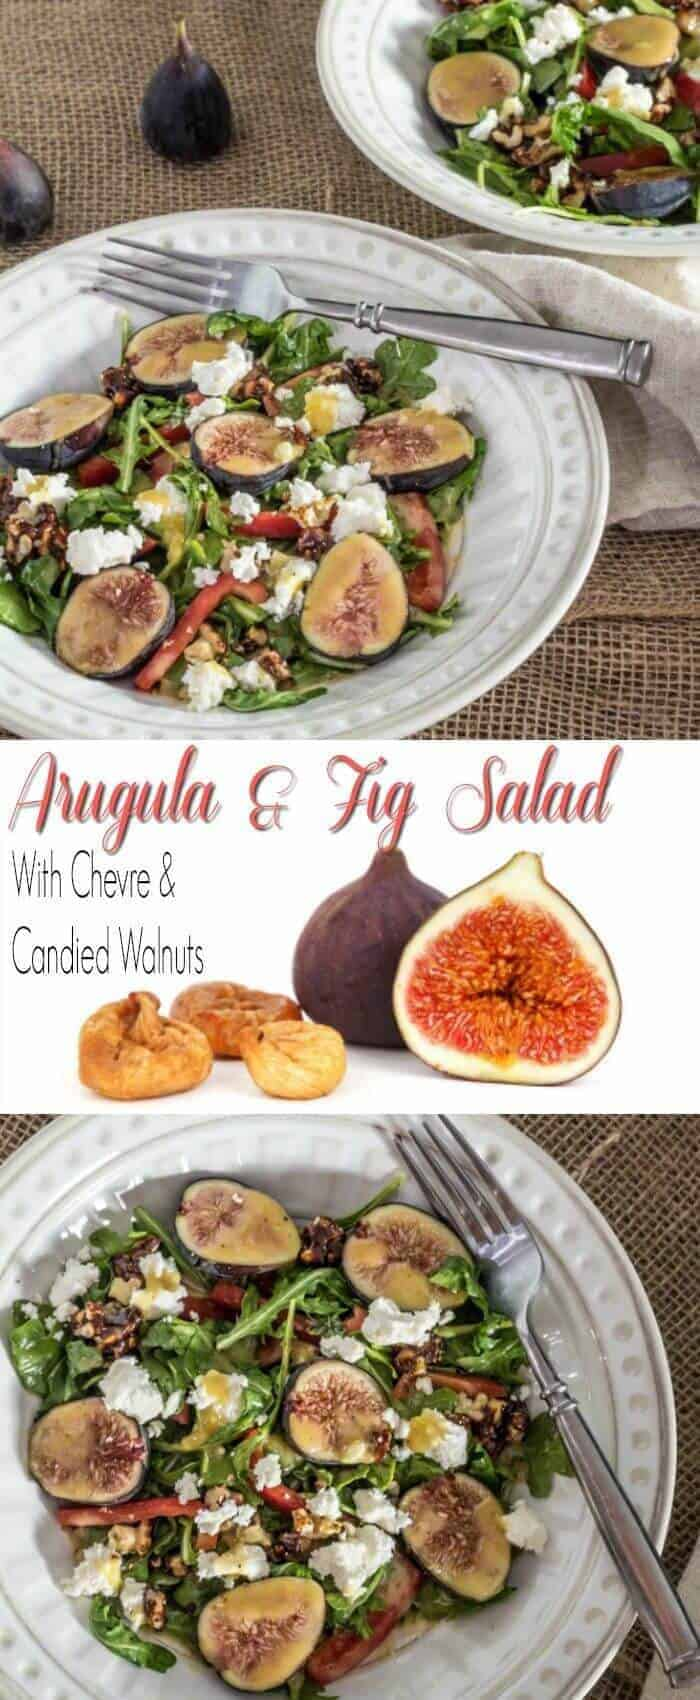 Arugula and Fig Salad With Chevre and Candied Walnuts - Seductively sweet figs, creamy chèvre, crunchy candied walnuts, and crisp red peppers are tossed with peppery arugula and dressed with a simple fig vinaigrette... Arugula and Fig Salad With Chèvre and Candied Walnuts redefines